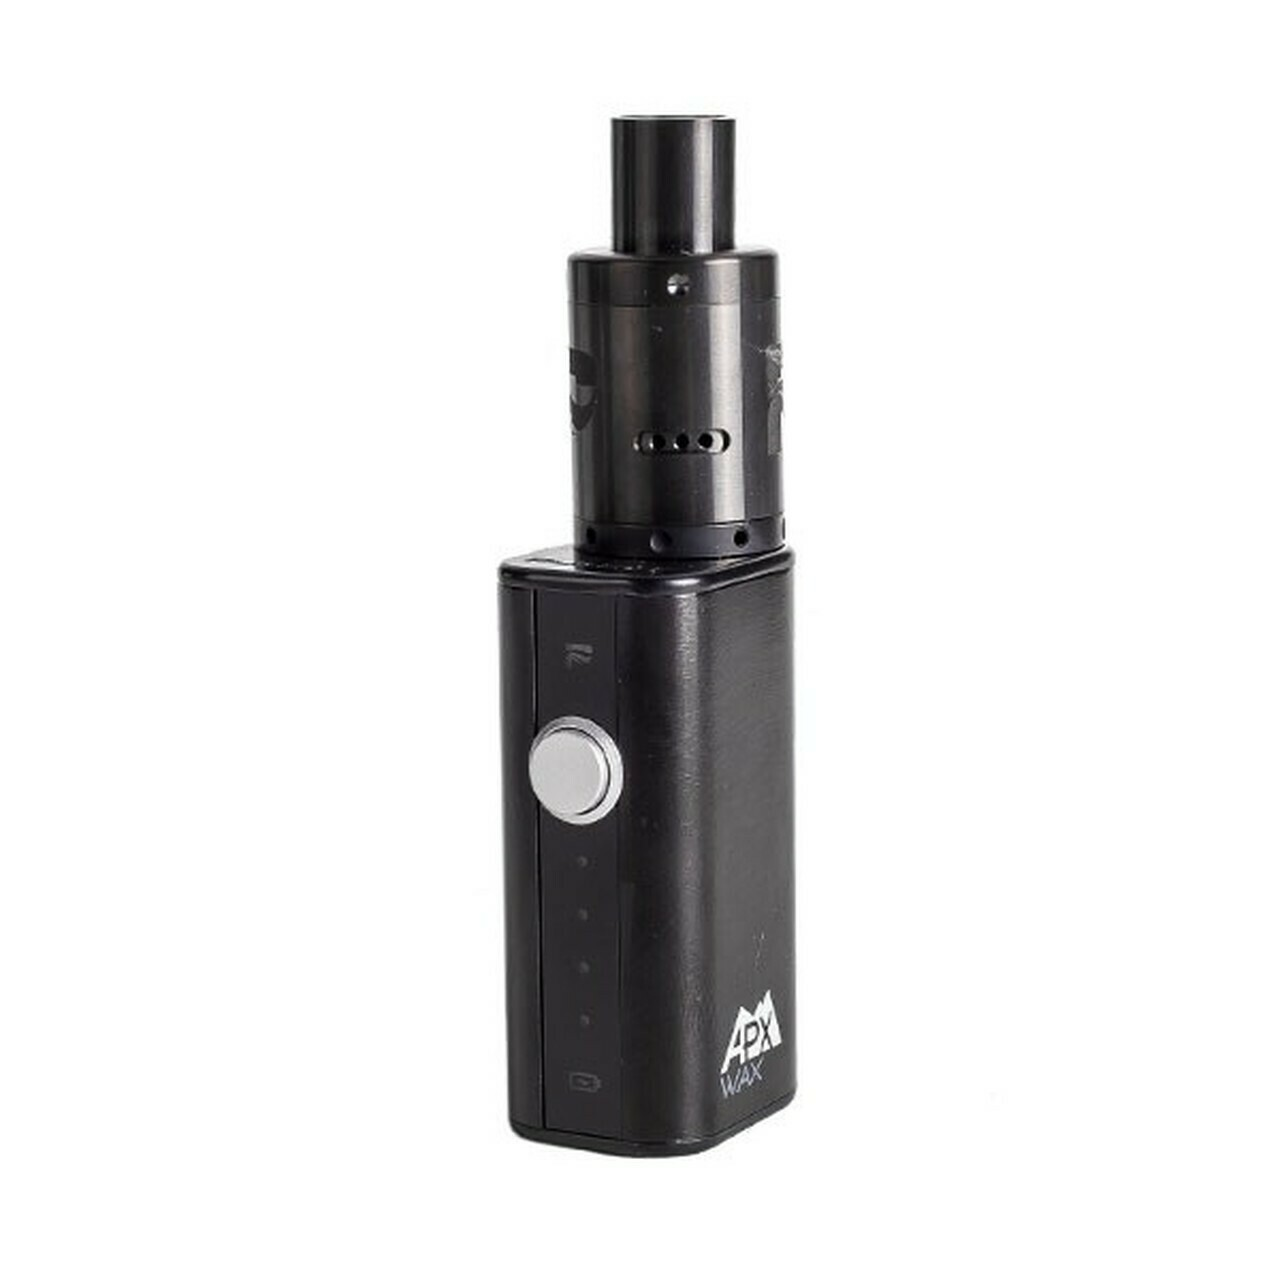 Pulsar APX Wax Vaporizer Black Out Edition